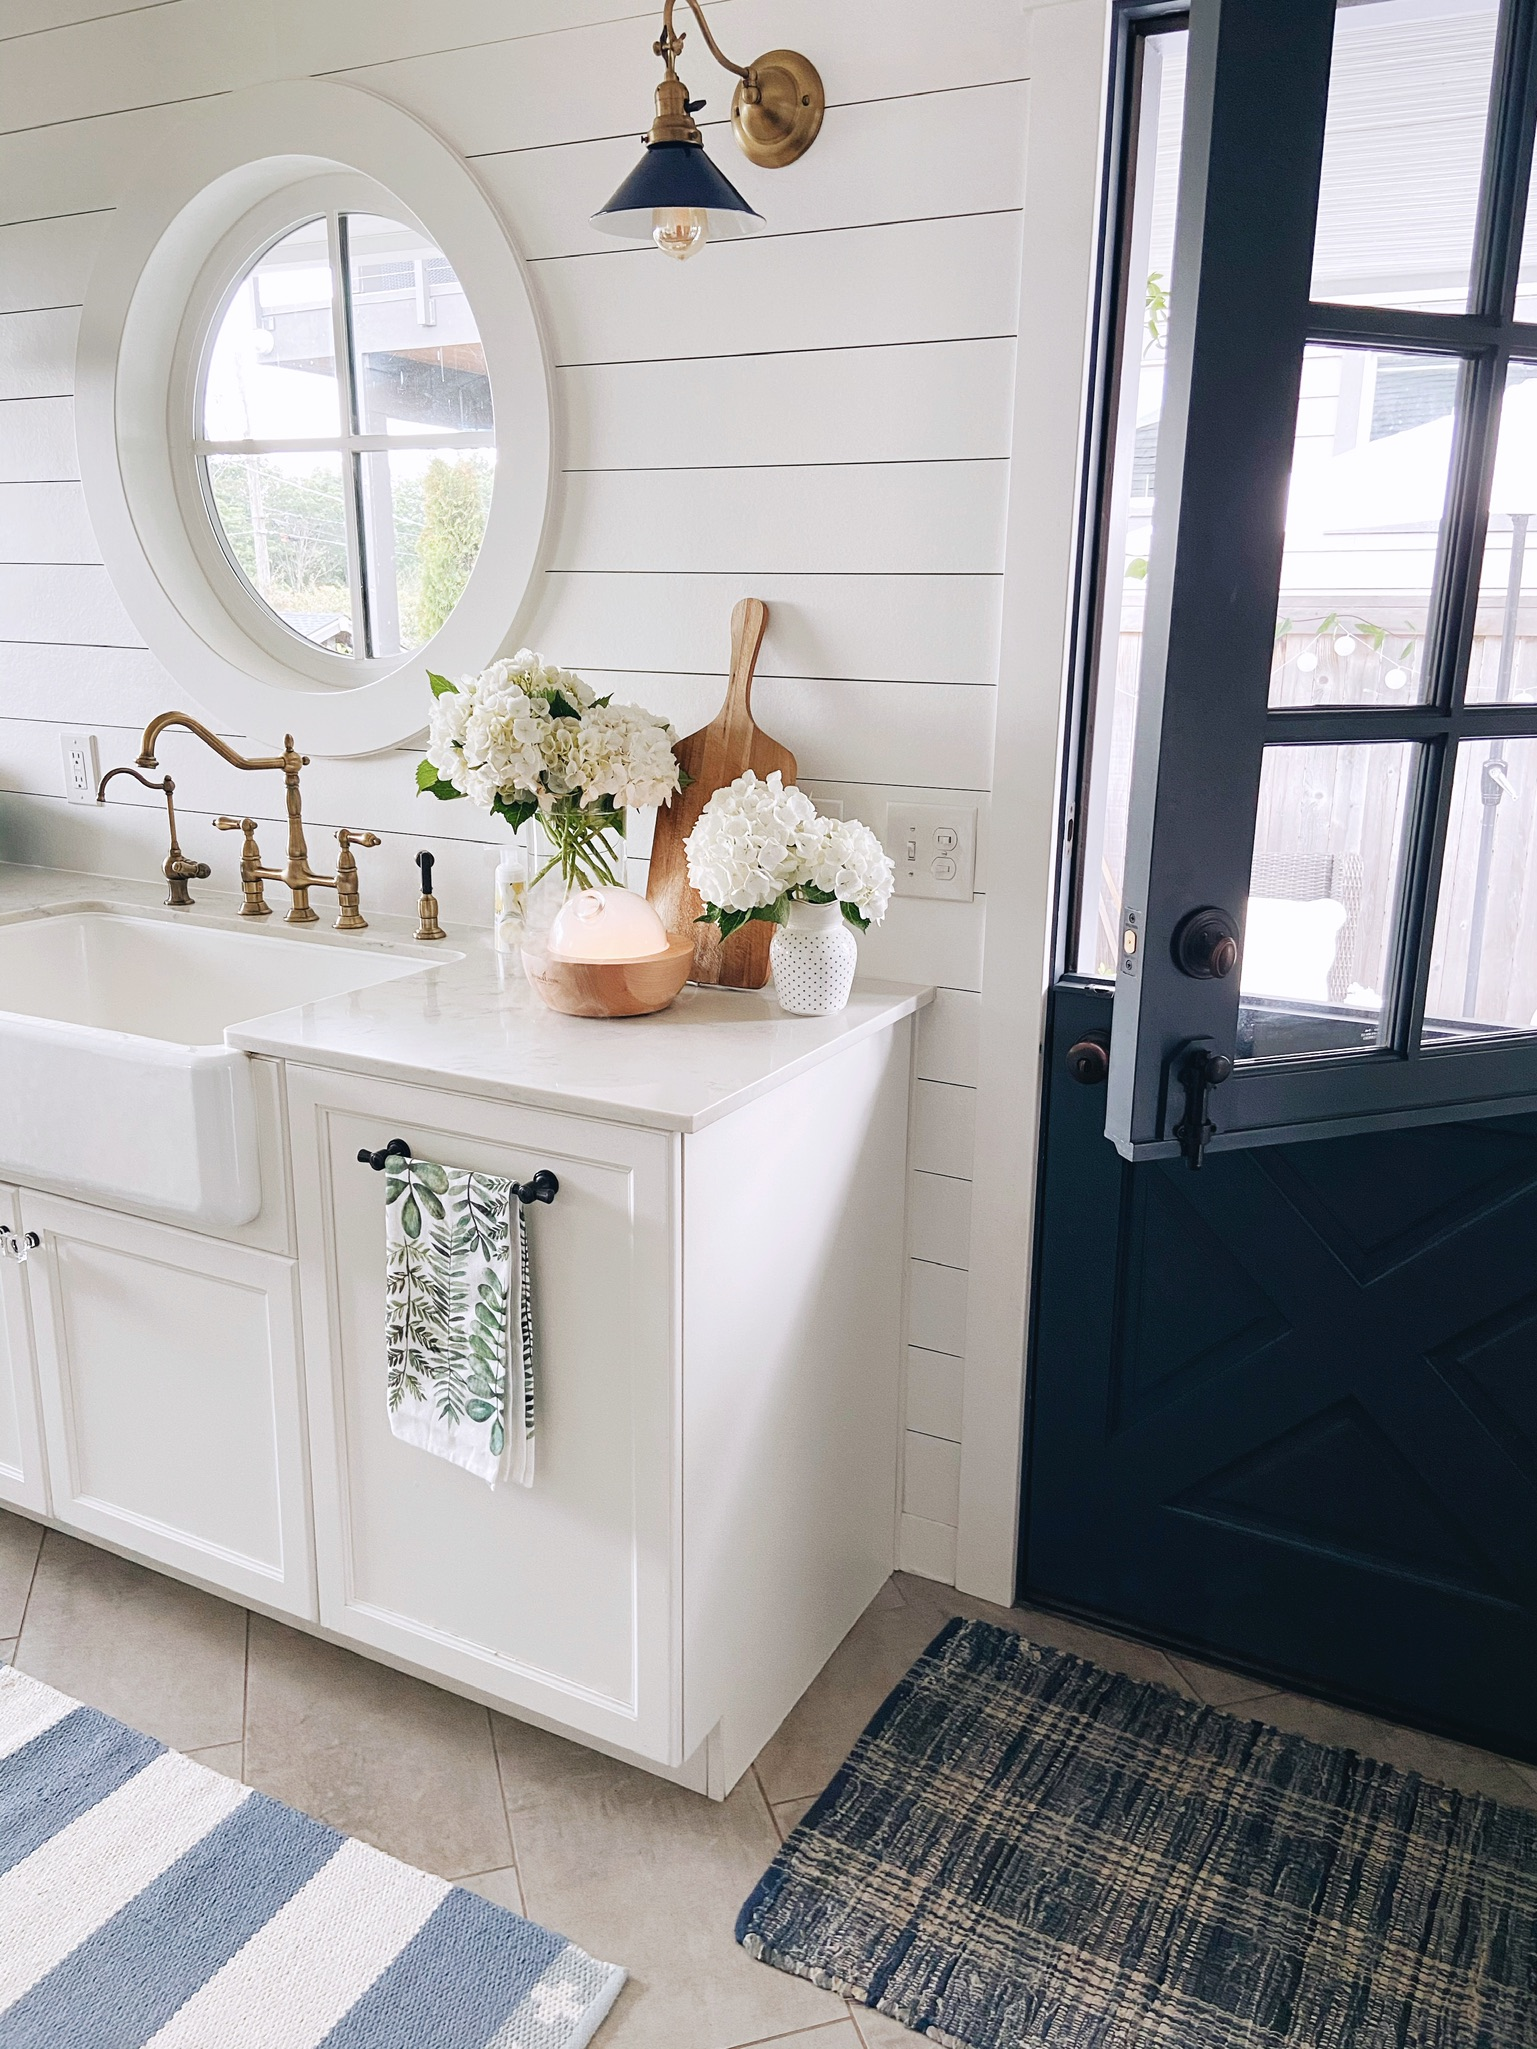 The joy of a clean sink + four daily routines